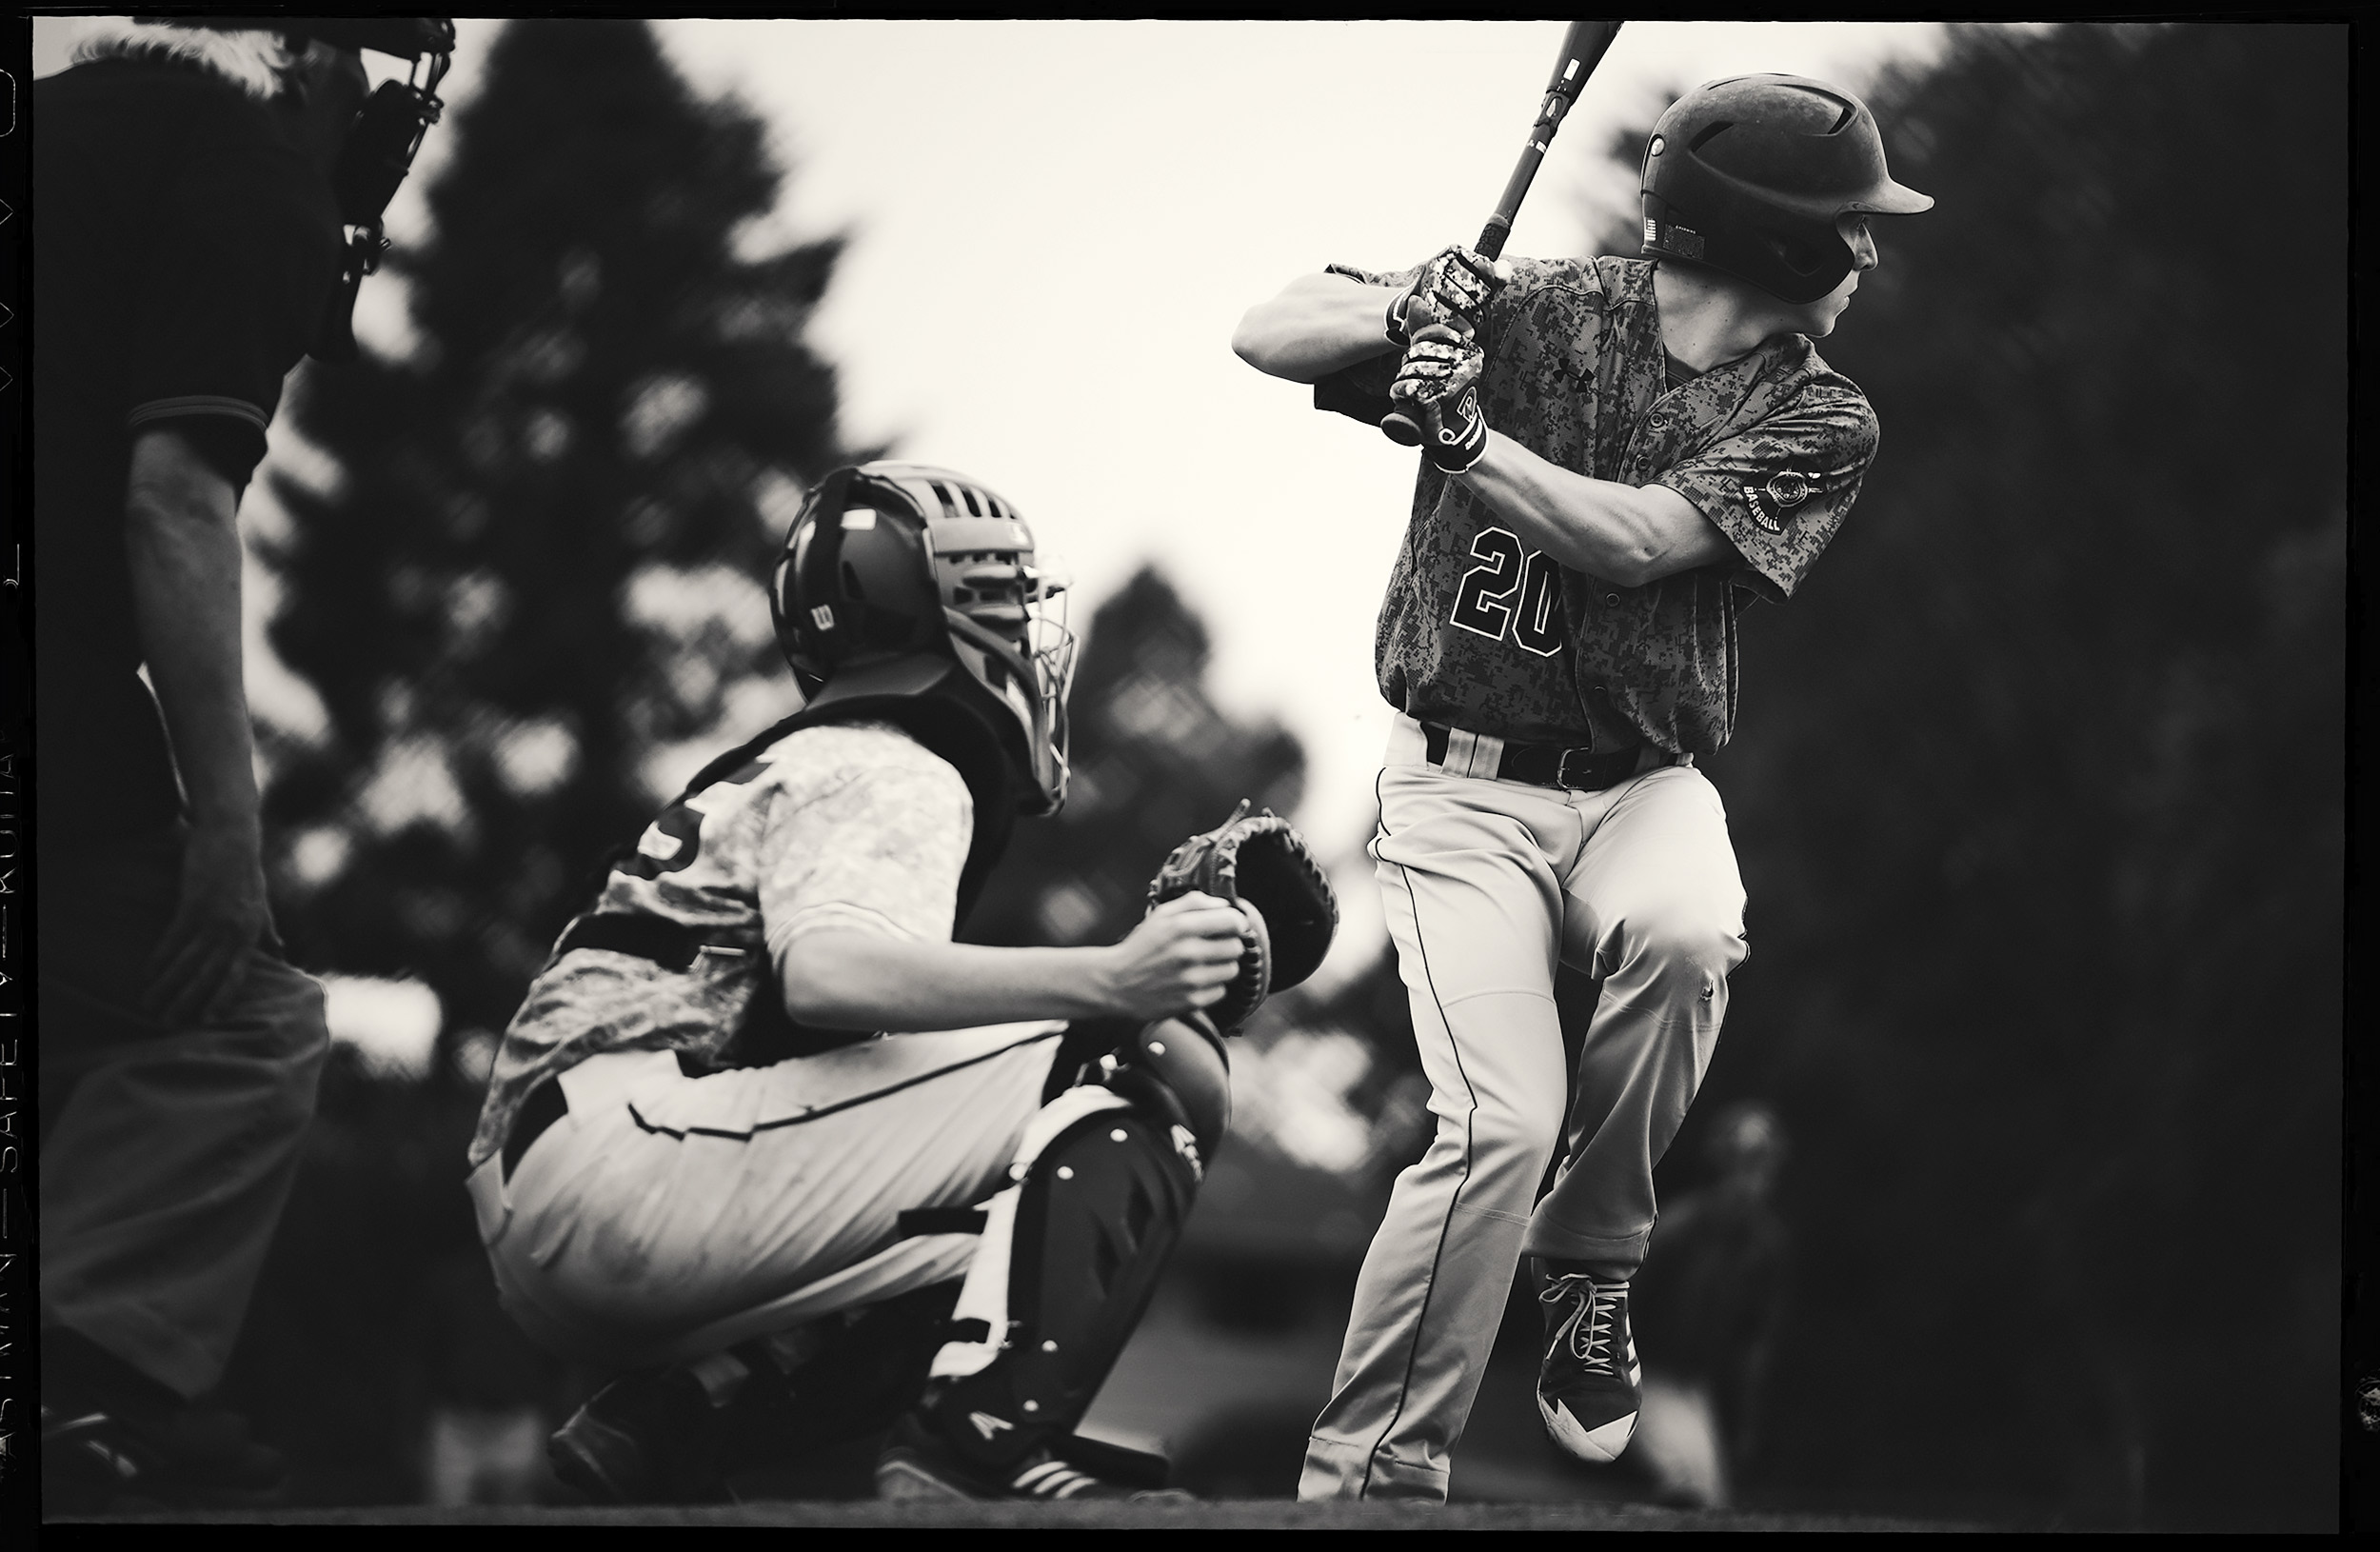 Black and white image of a teenage baseball player standing in the batters box and loading up at a pitch